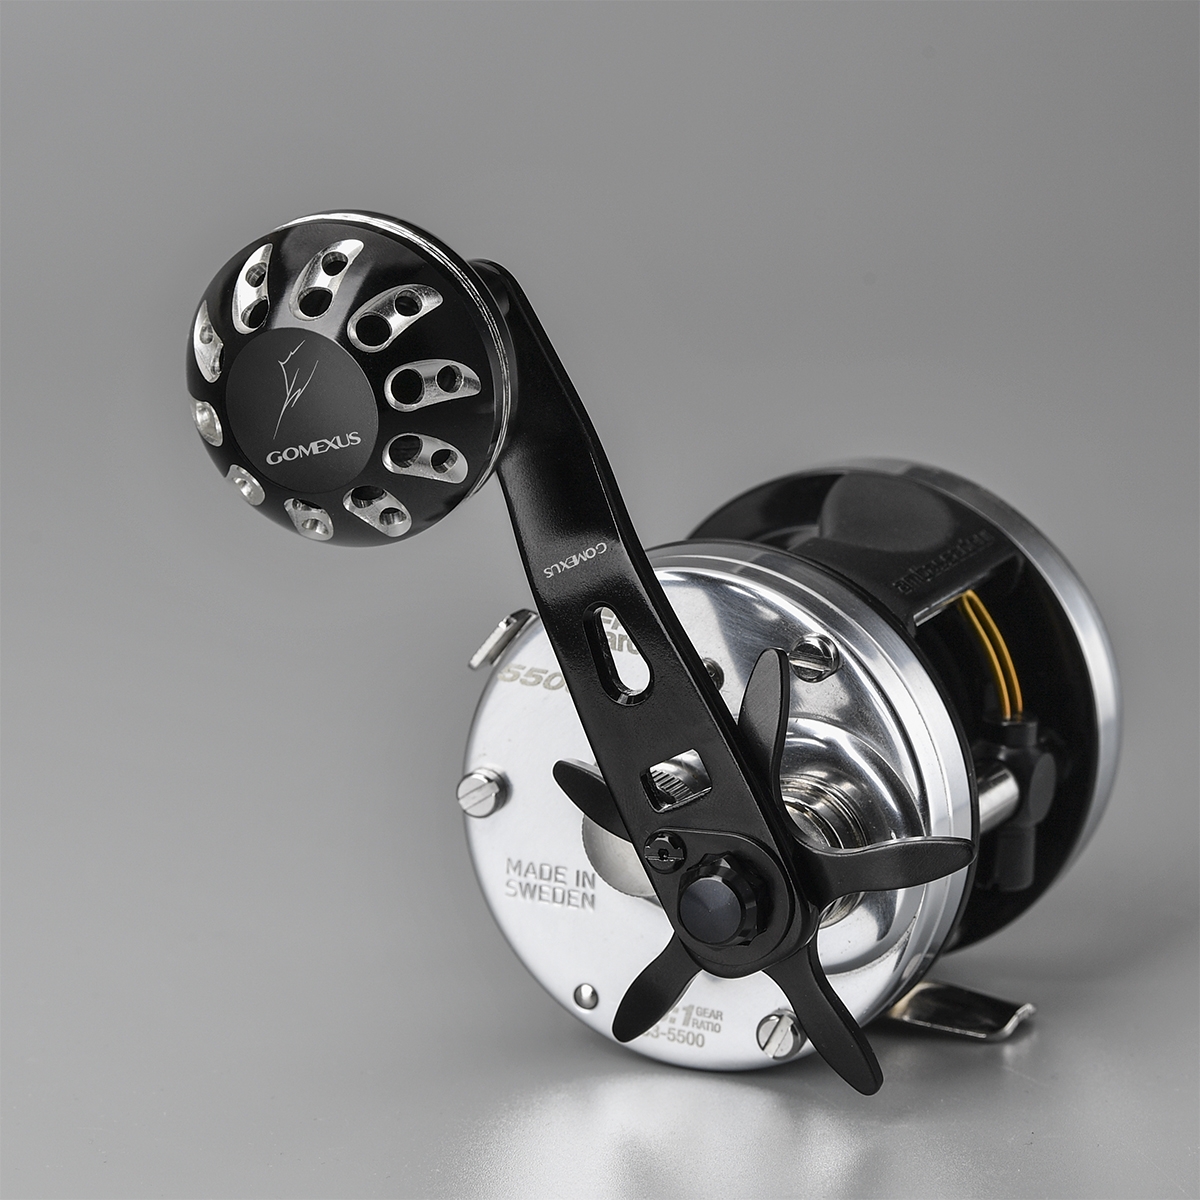 Handle Daiwa Gomexus Reel 4